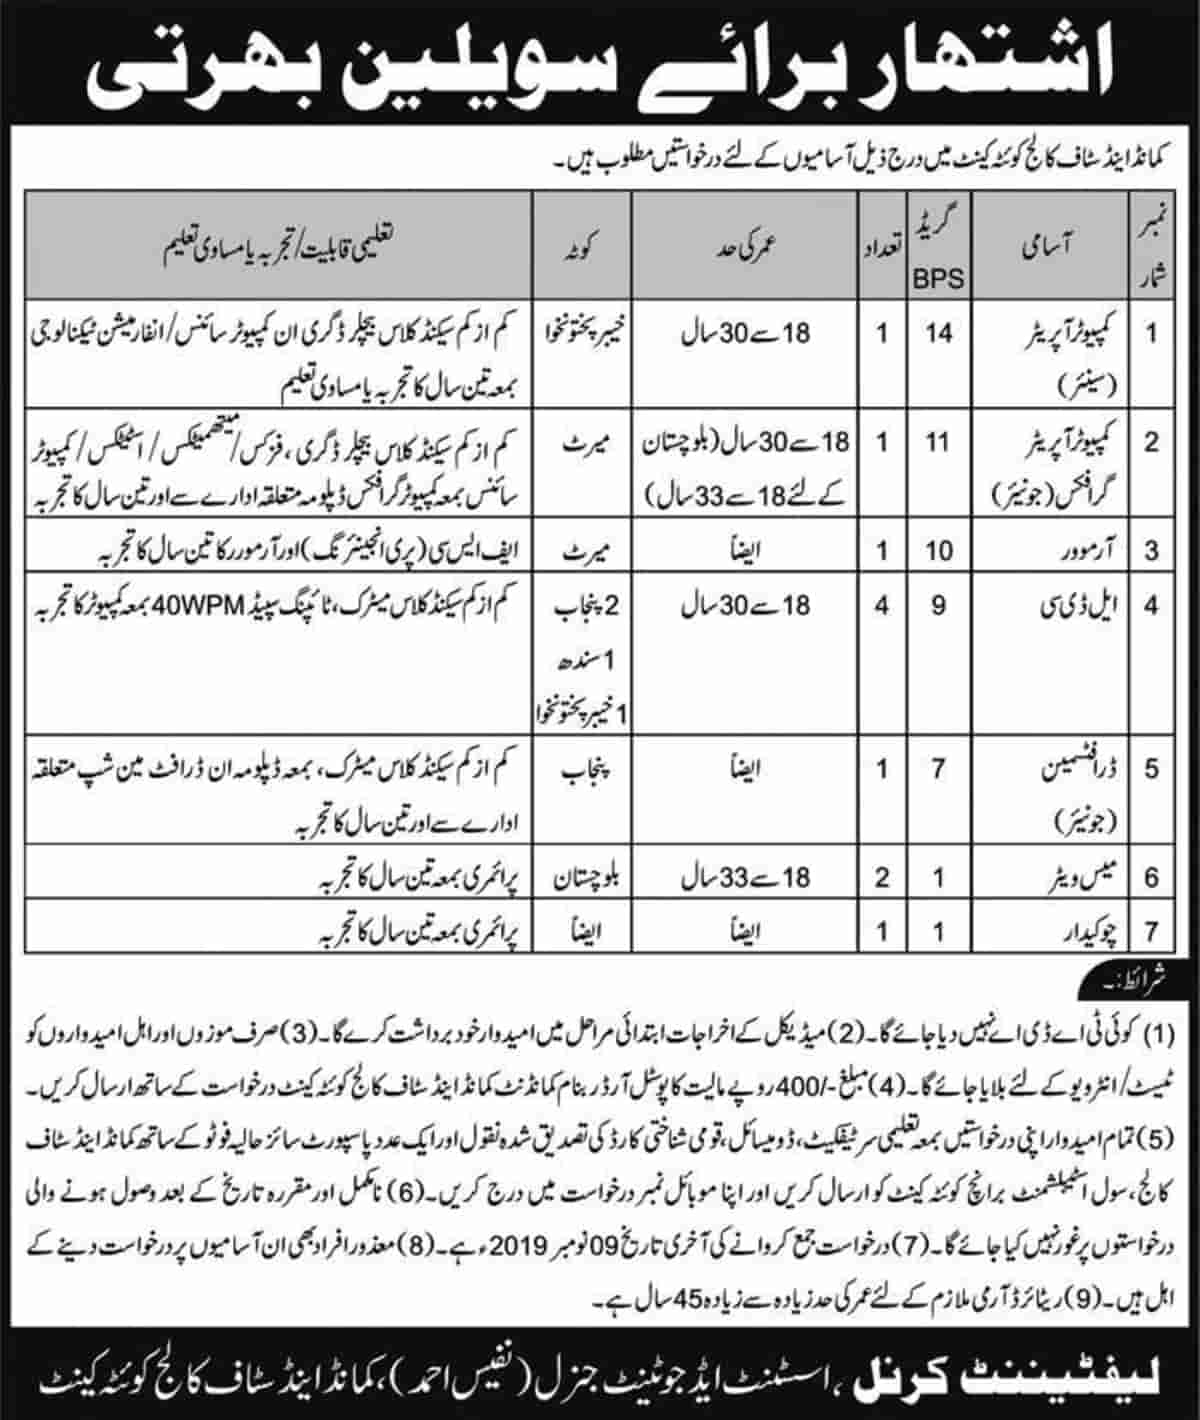 Pakistan Army Command and Staff College Quetta Cantt Civilian Jobs 2019